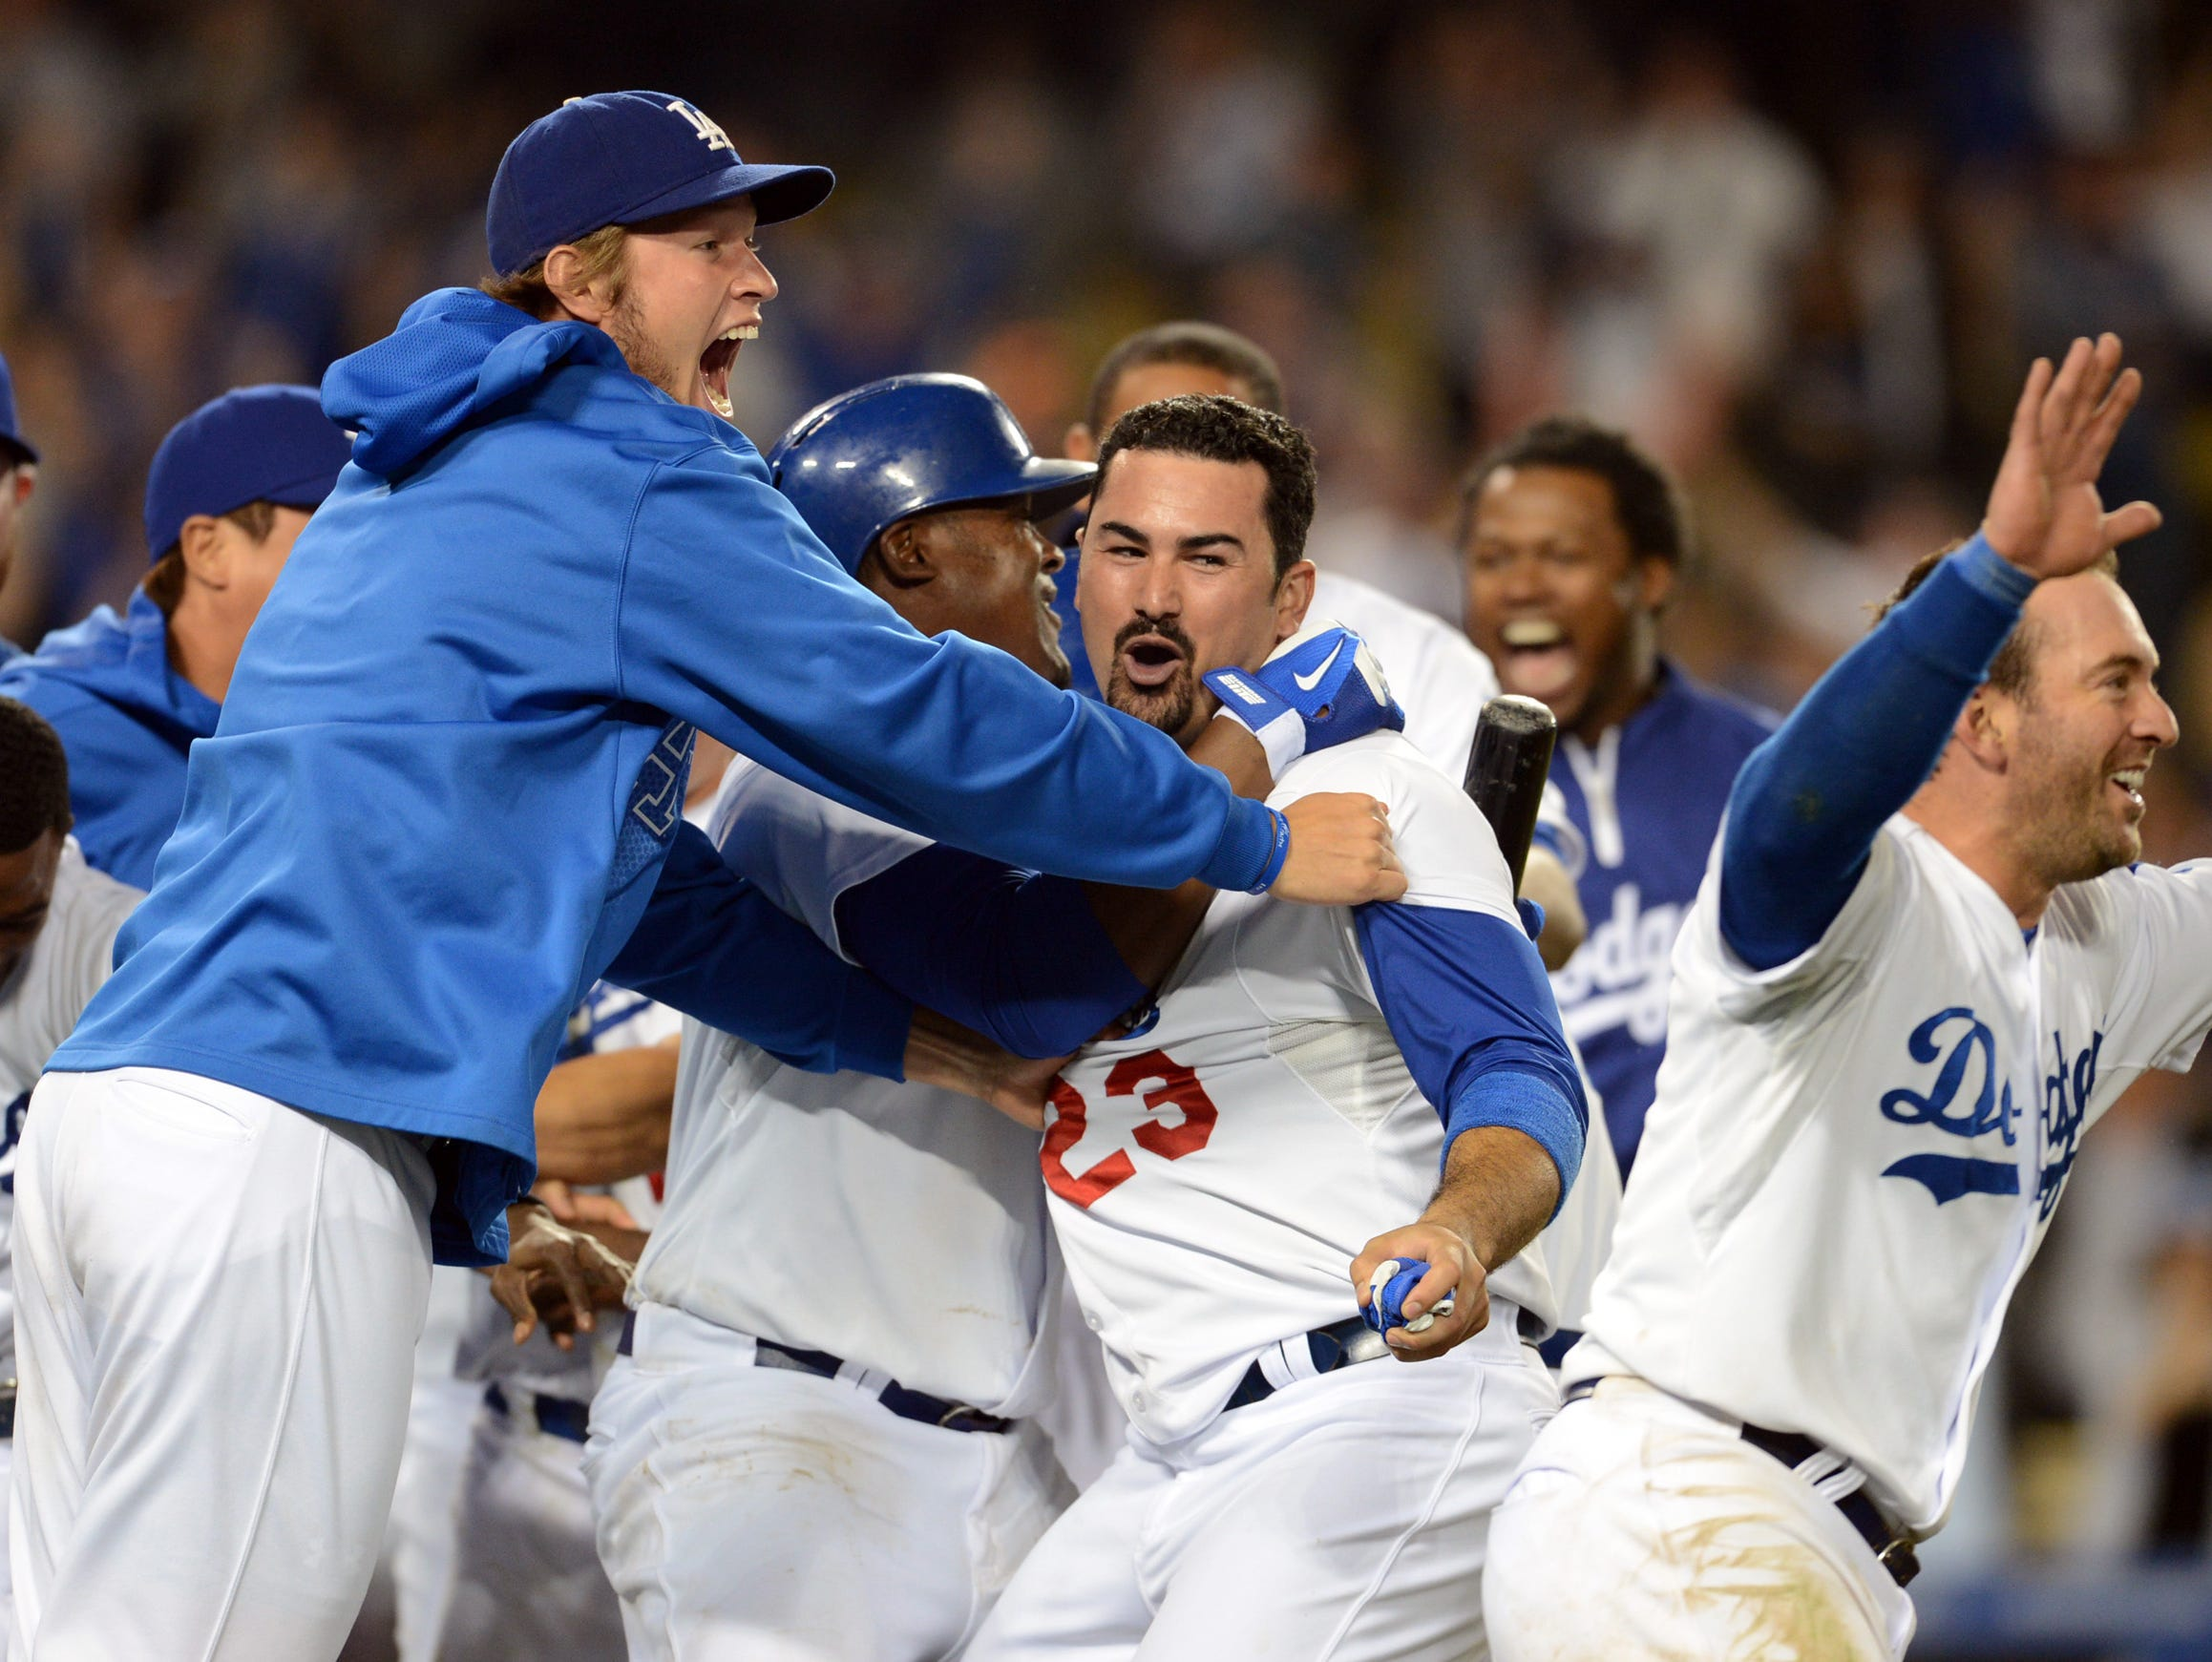 Aug. 9: Los Angeles Dodgers celebrate after first baseman Adrian Gonzalez crossed the plate in the ninth inning of the game for the winning run against the Tampa Bay Rays.